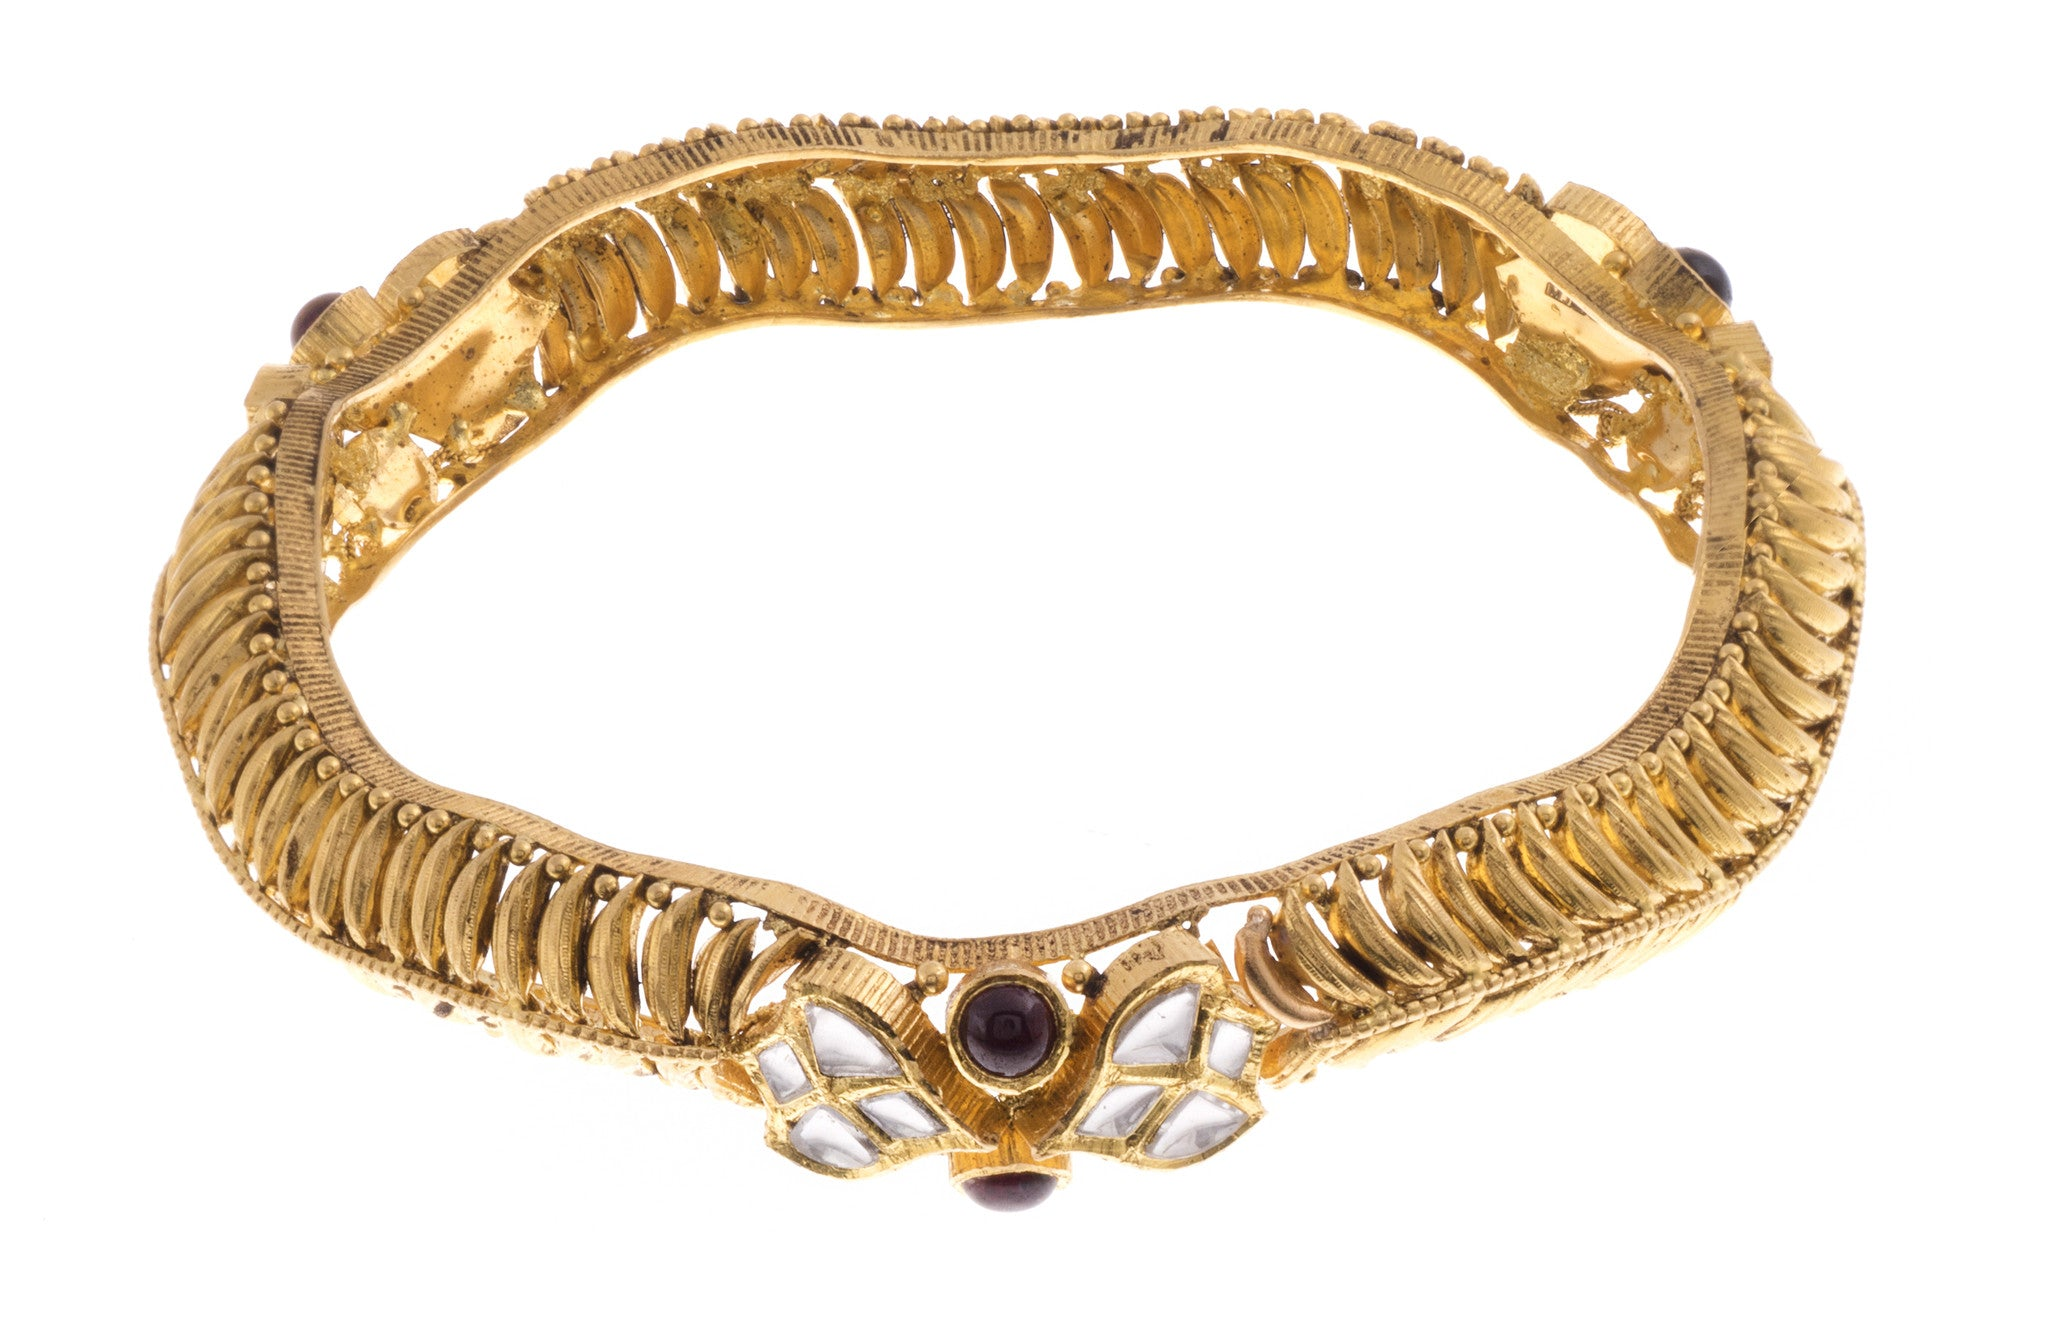 22ct Yellow Gold Antique Look Bangle with Synthetic Stones (G1753), Minar Jewellers - 2